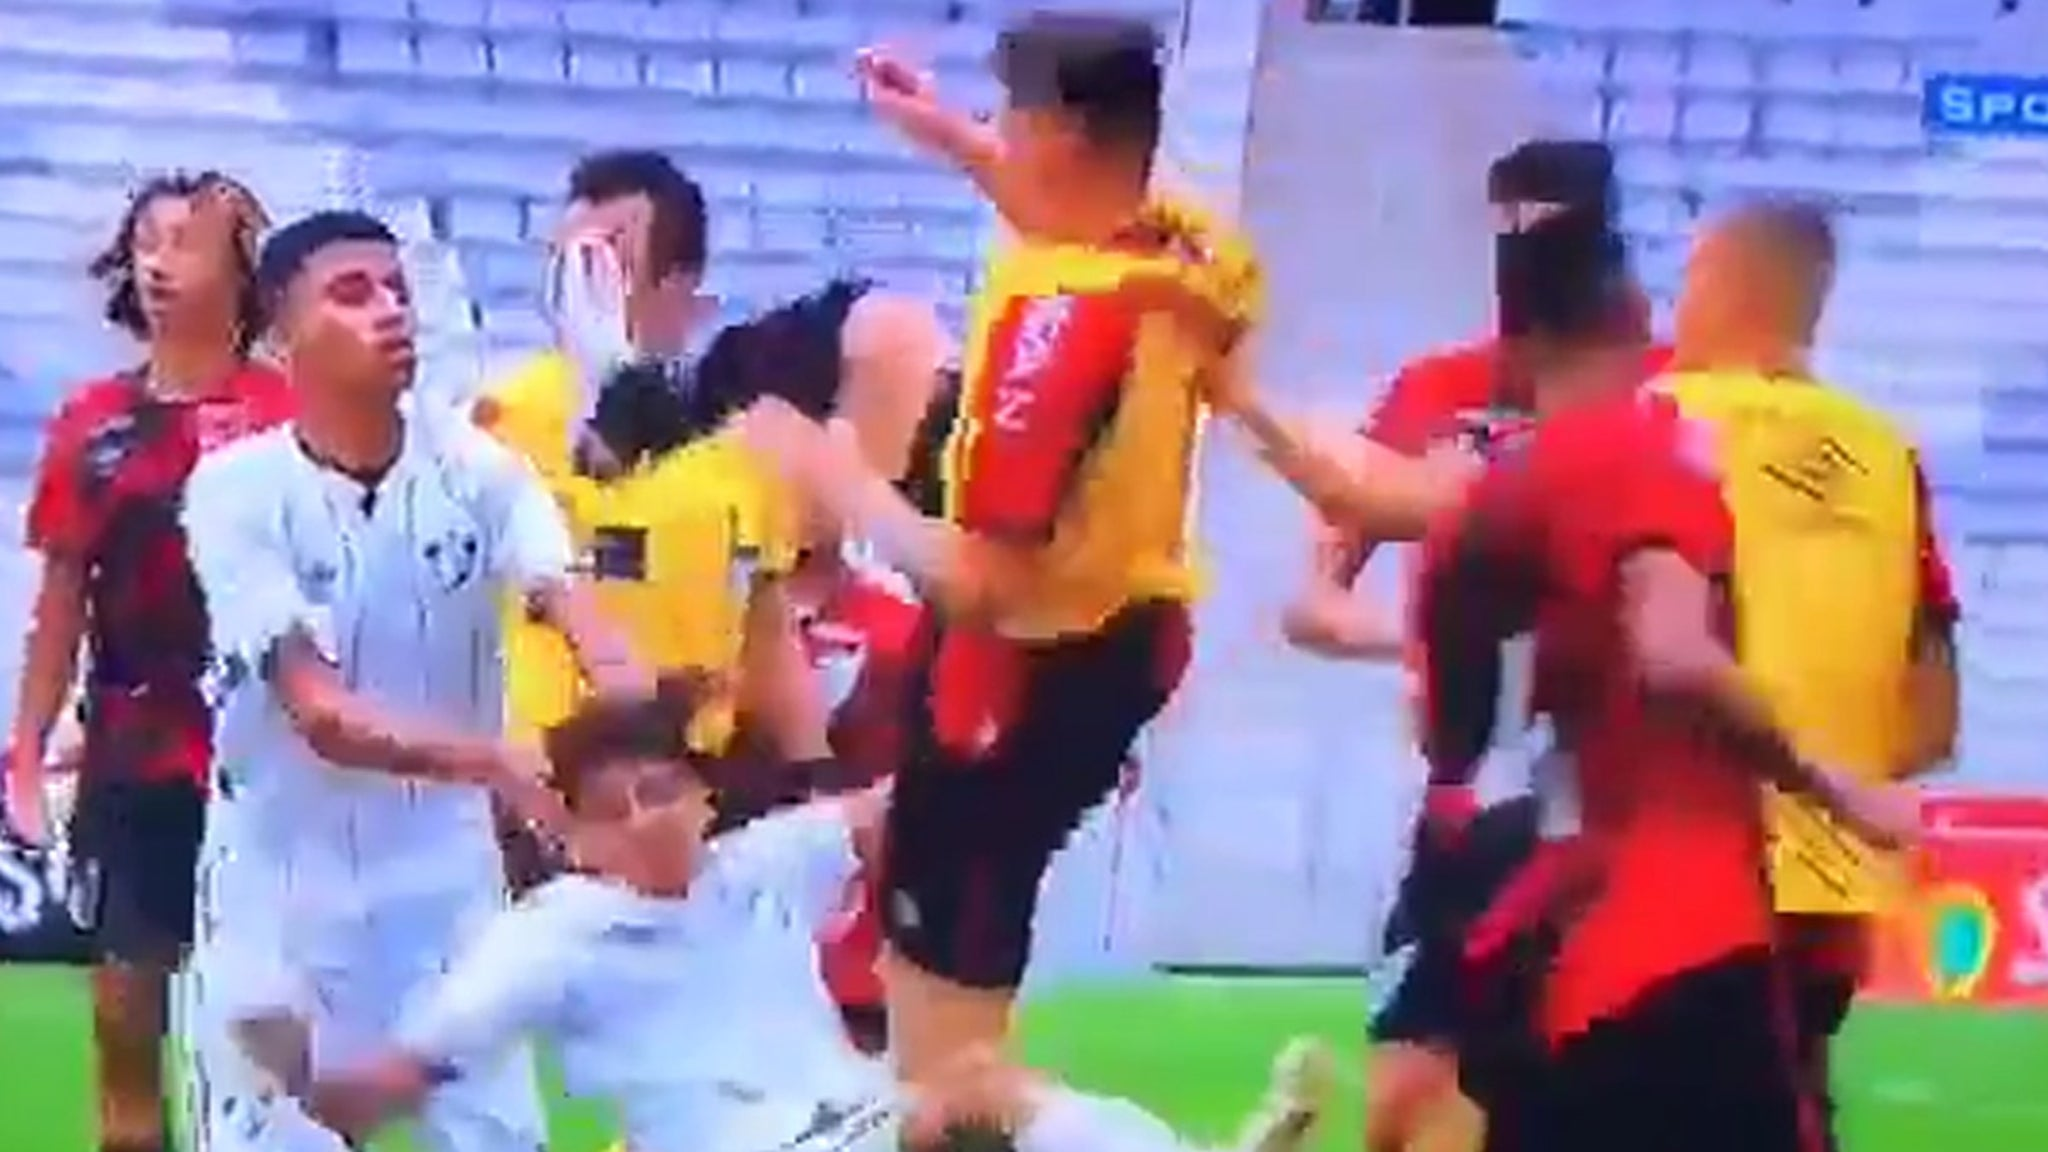 Teen Soccer Player Decked By Flying Karate Kick During Insane In-Game Brawl